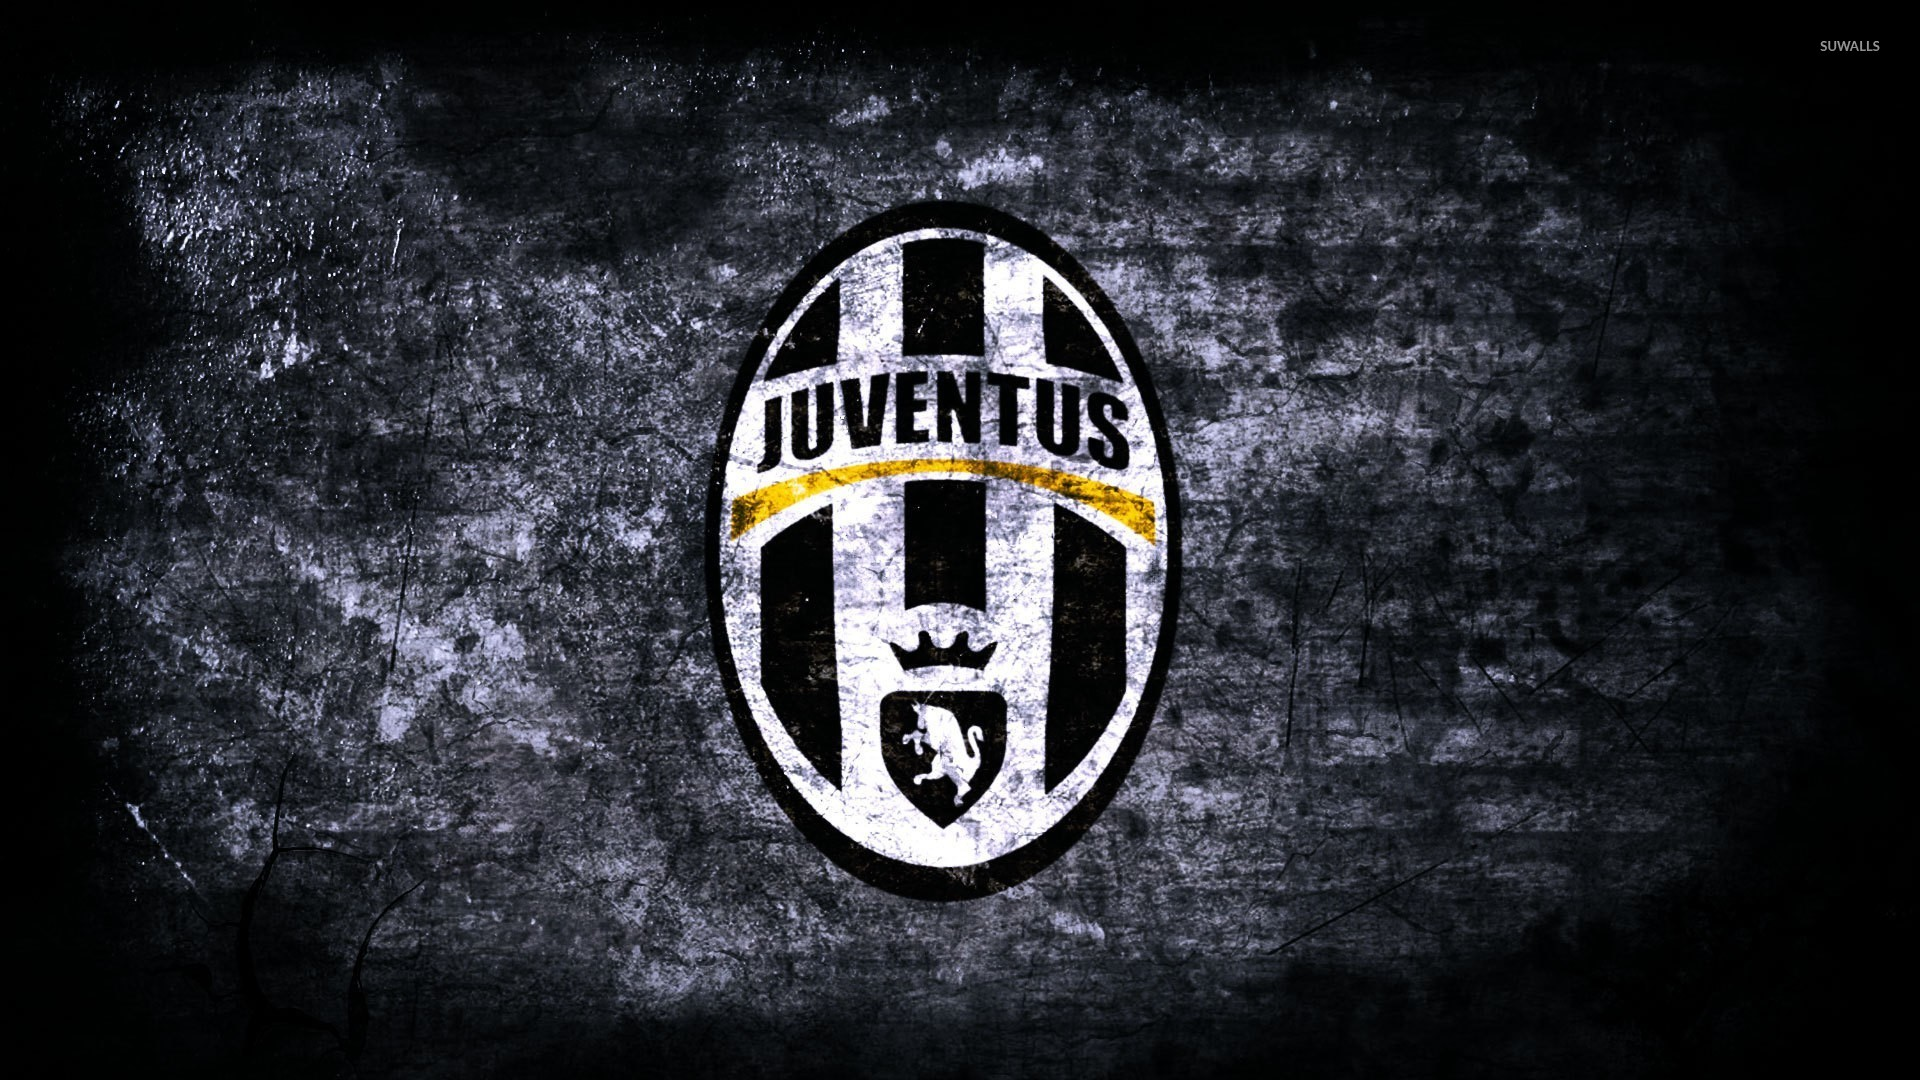 Juventus Wallpaper Sport Wallpapers 28310